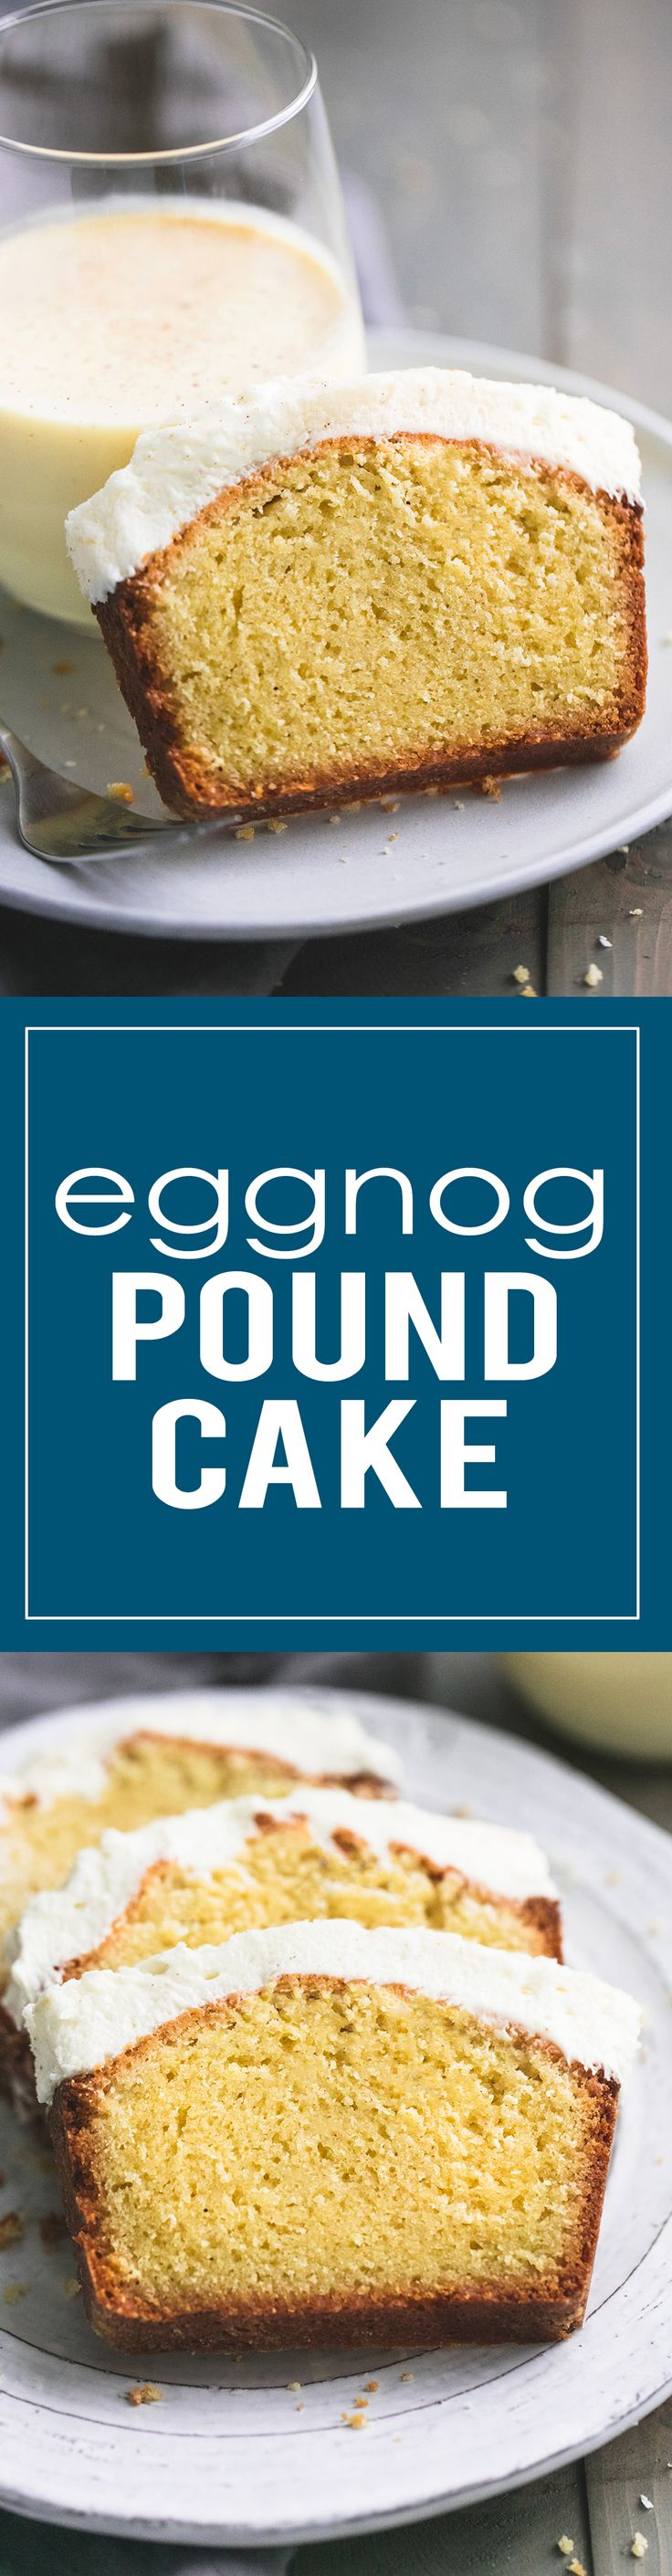 Easy Eggnog Pound Cake with a thick layer of creamy eggnog frosting is the perfect holiday treat.  | lecremedelacrumb.com